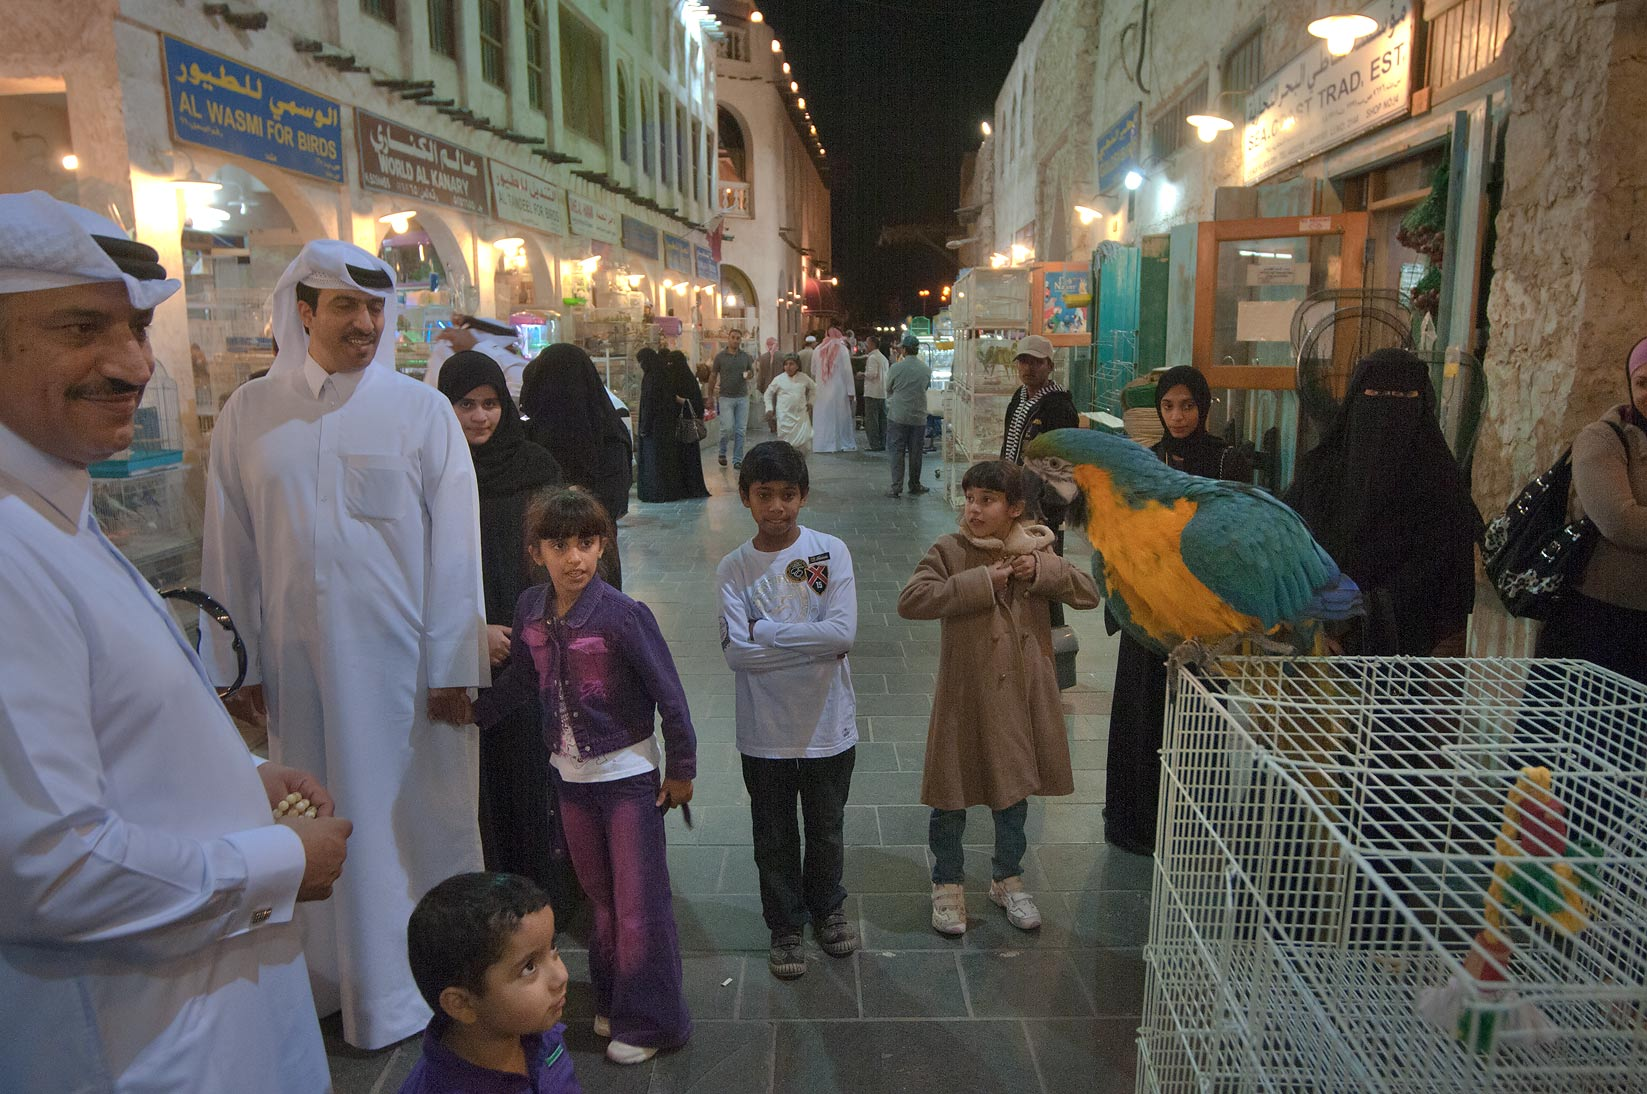 Parrot show in Souq Waqif (Old Market). Doha, Qatar